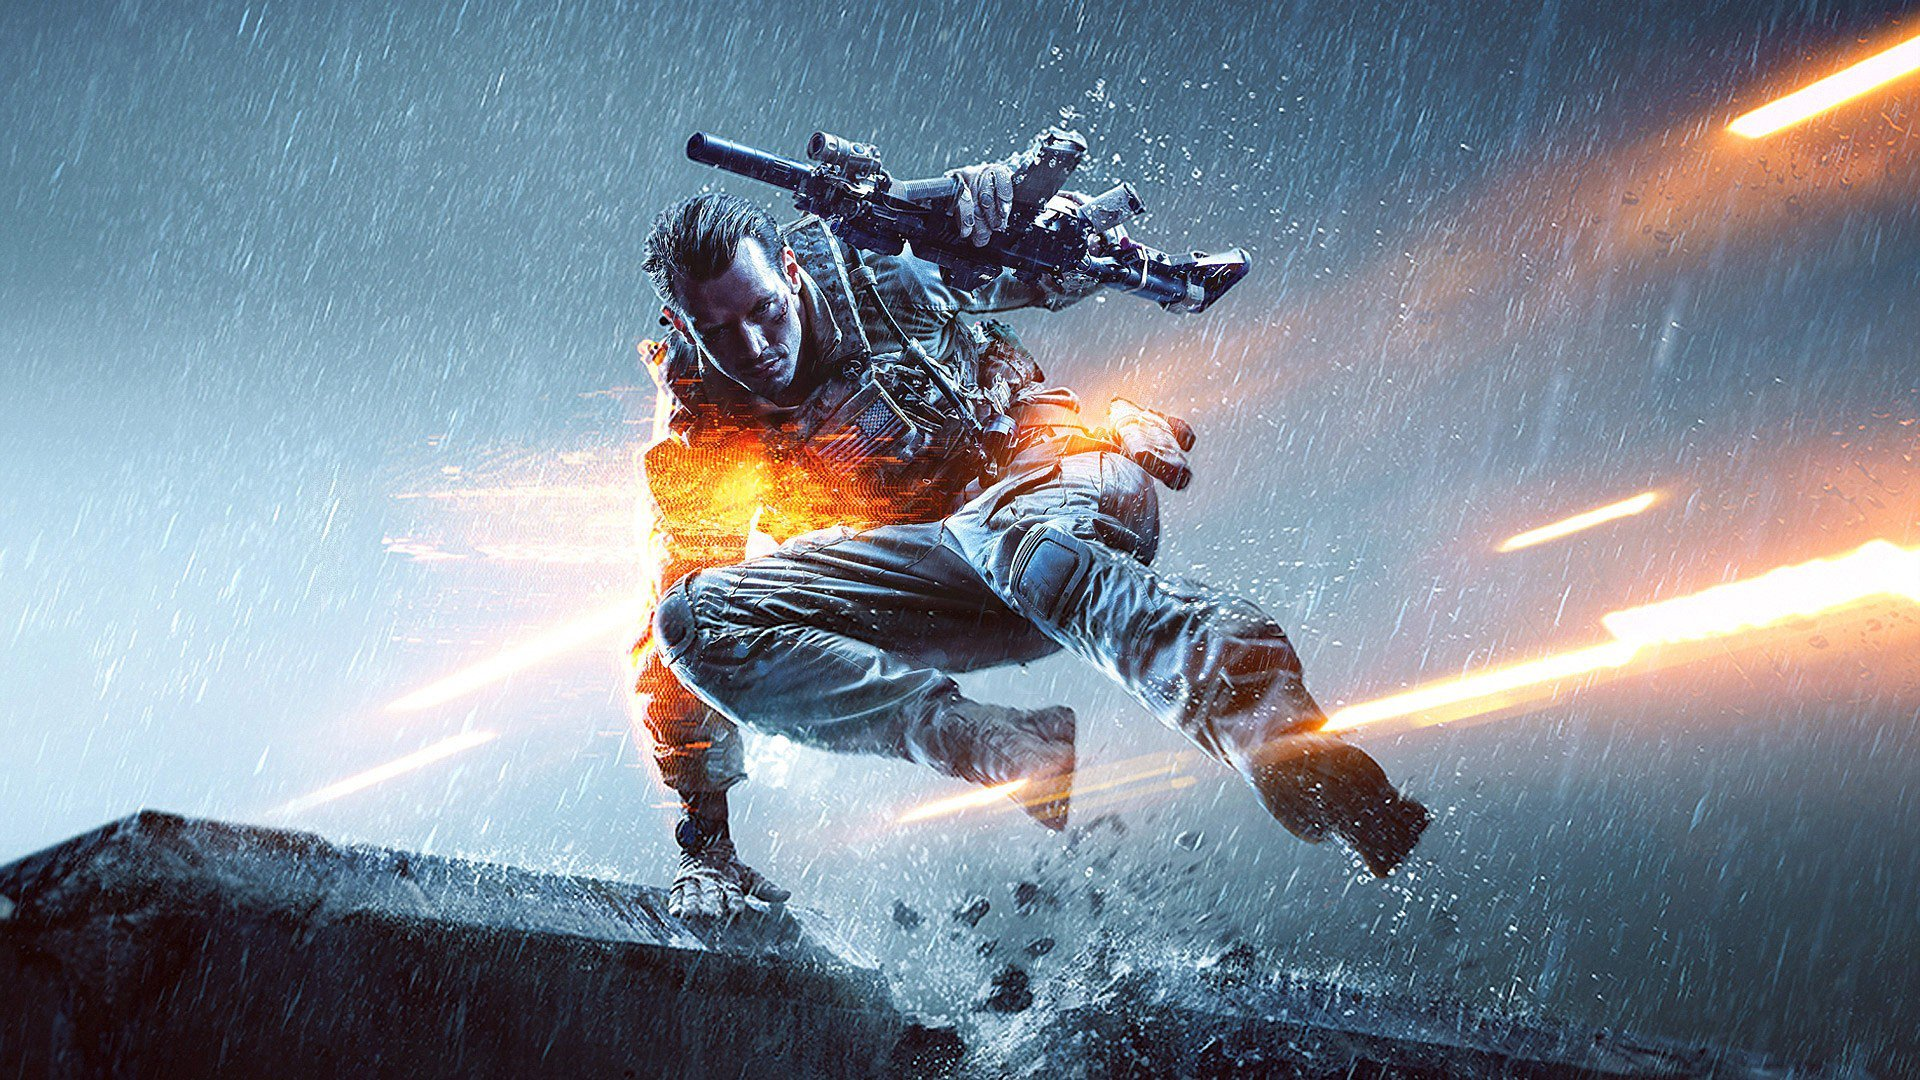 Download Wallpaper 1280x1280 Battlefield 4 Game Ea: Battlefield, HD Games, 4k Wallpapers, Images, Backgrounds